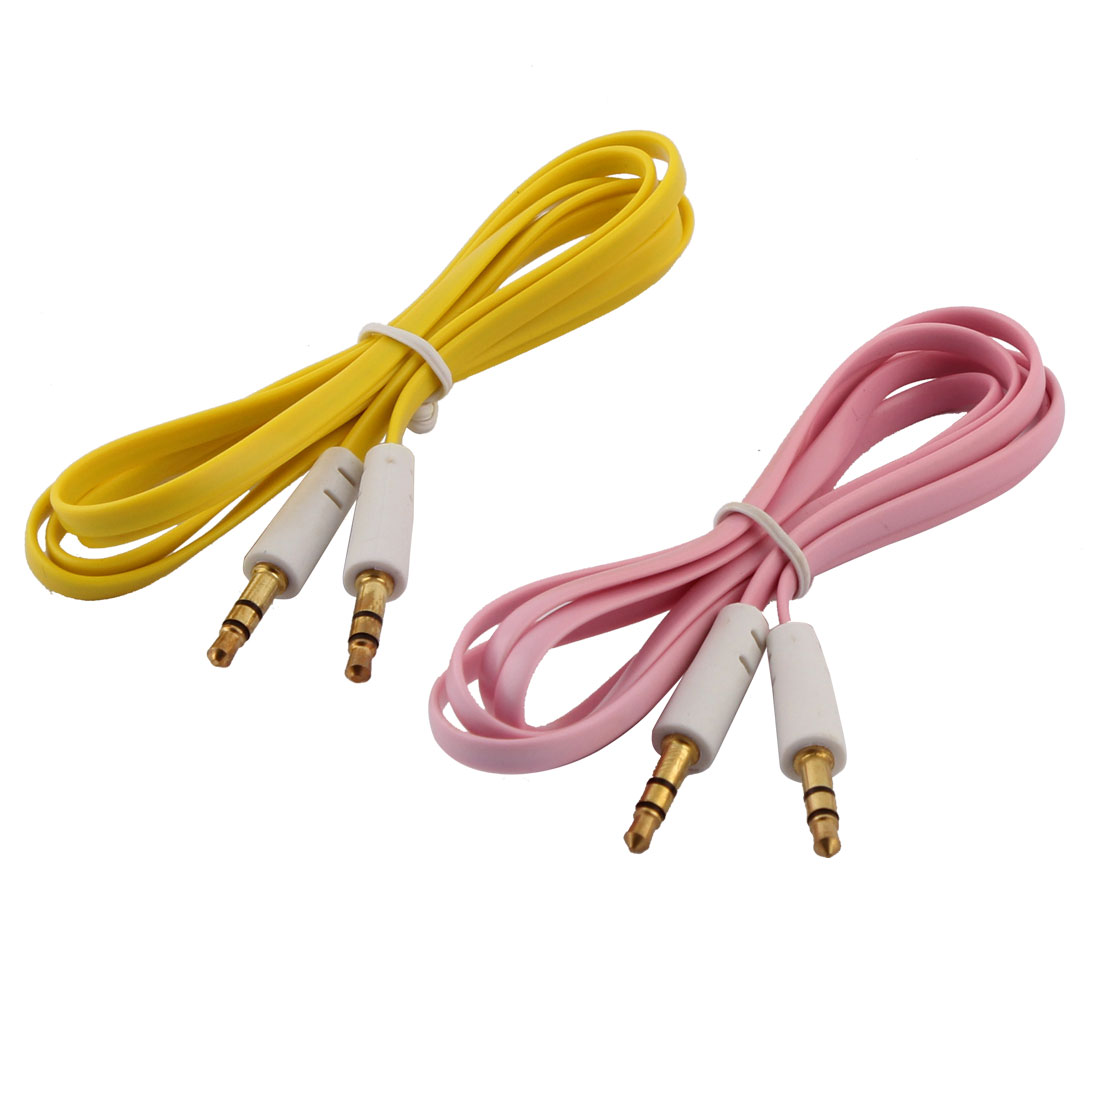 2pcs 3.3ft Plastic Noodle Shaped 3.5mm Male to Male Flat Audio Cable Yellow Pink